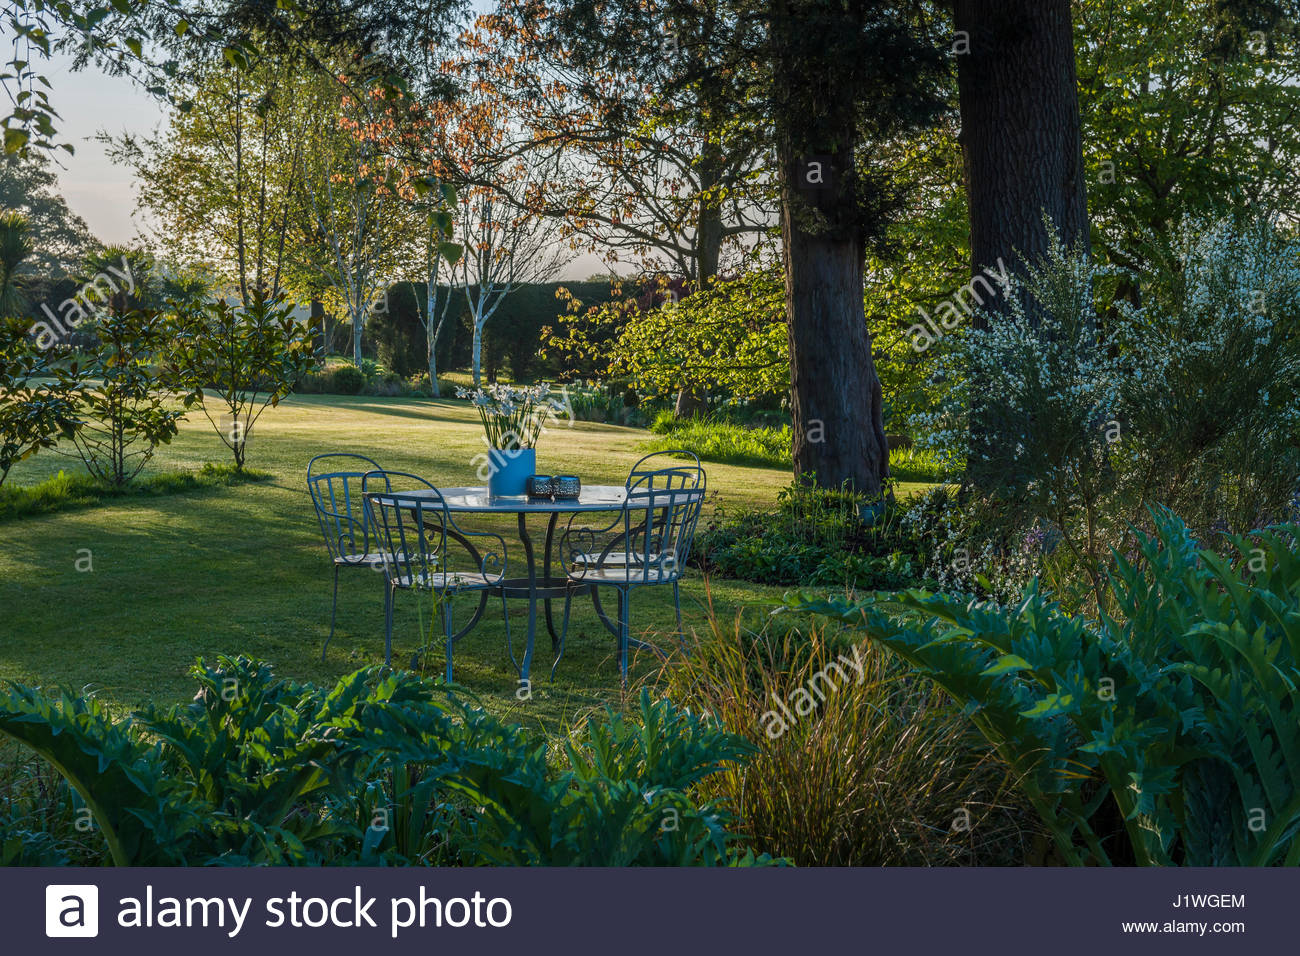 garden table and chairs - Stock Image